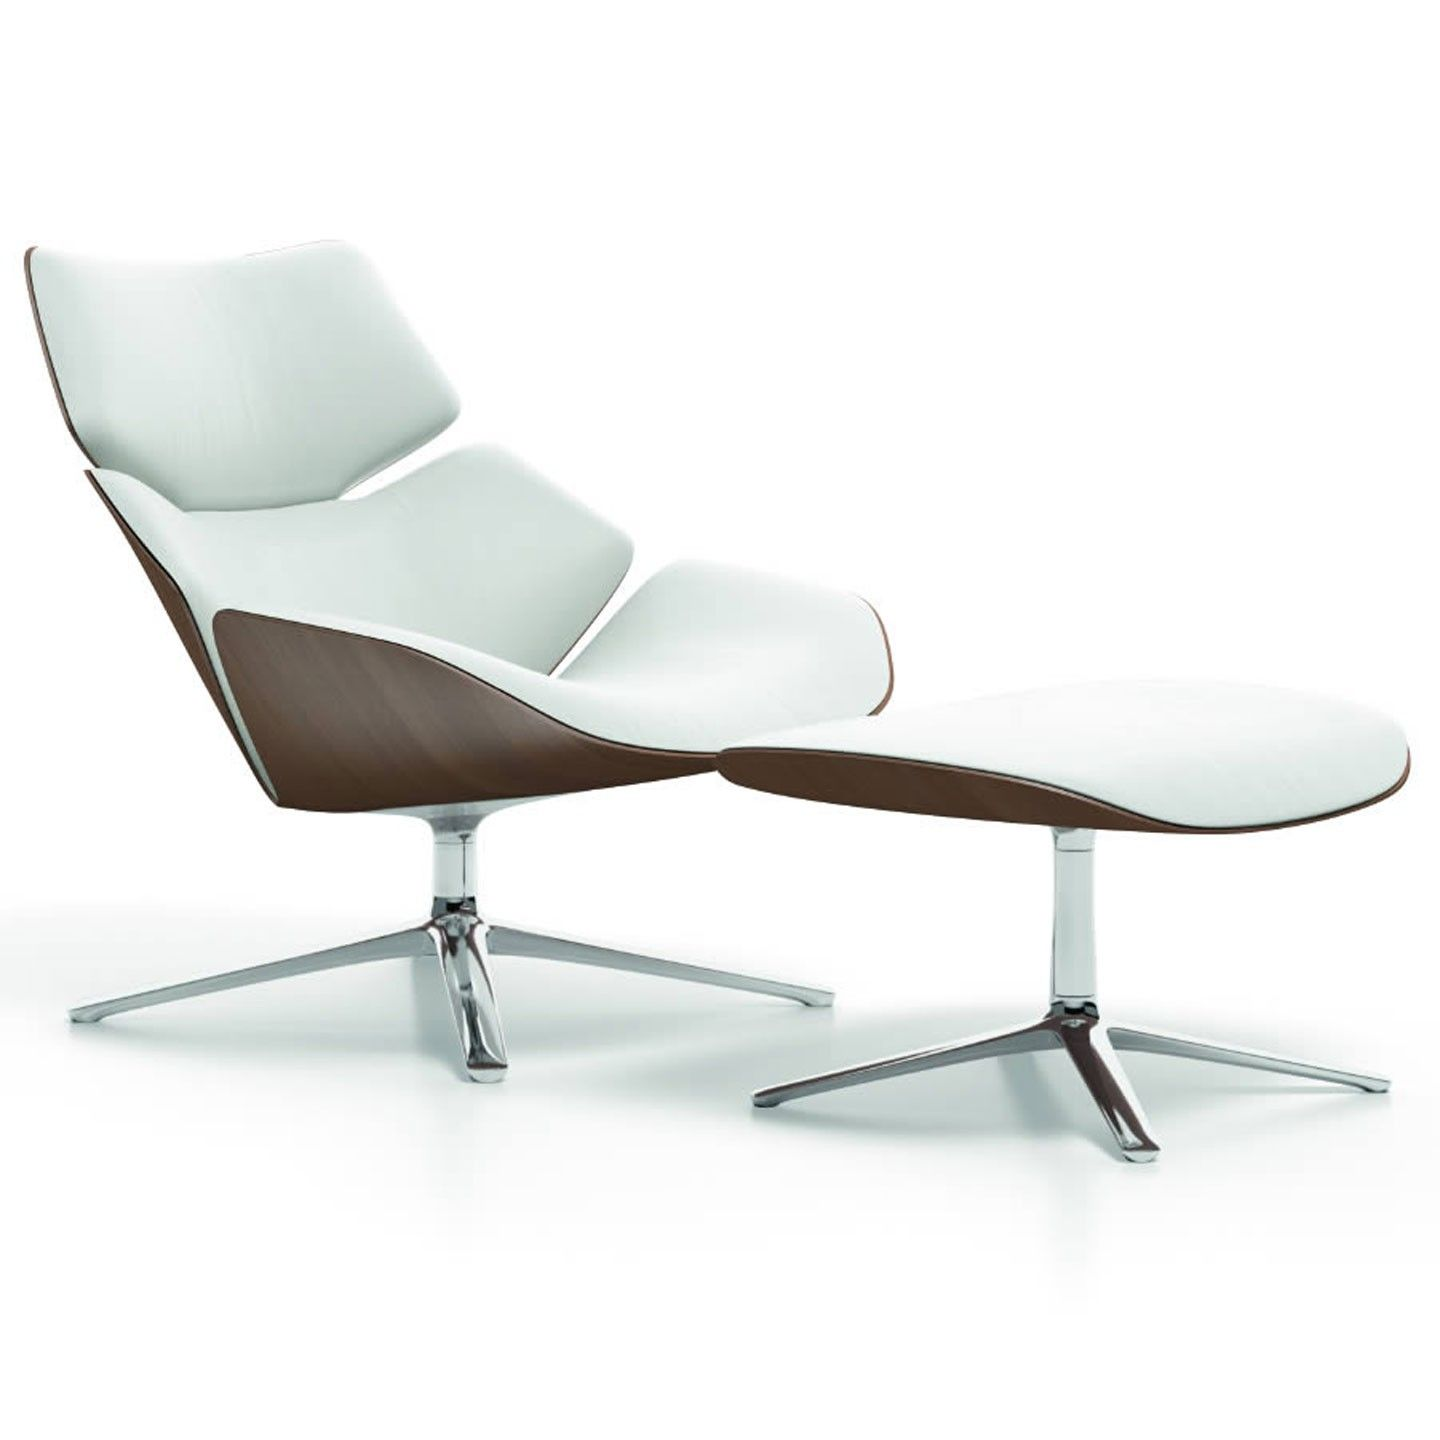 Shrimp Lounge Chair Stuhl Design Zeitgenössische Möbel Lounge Chair